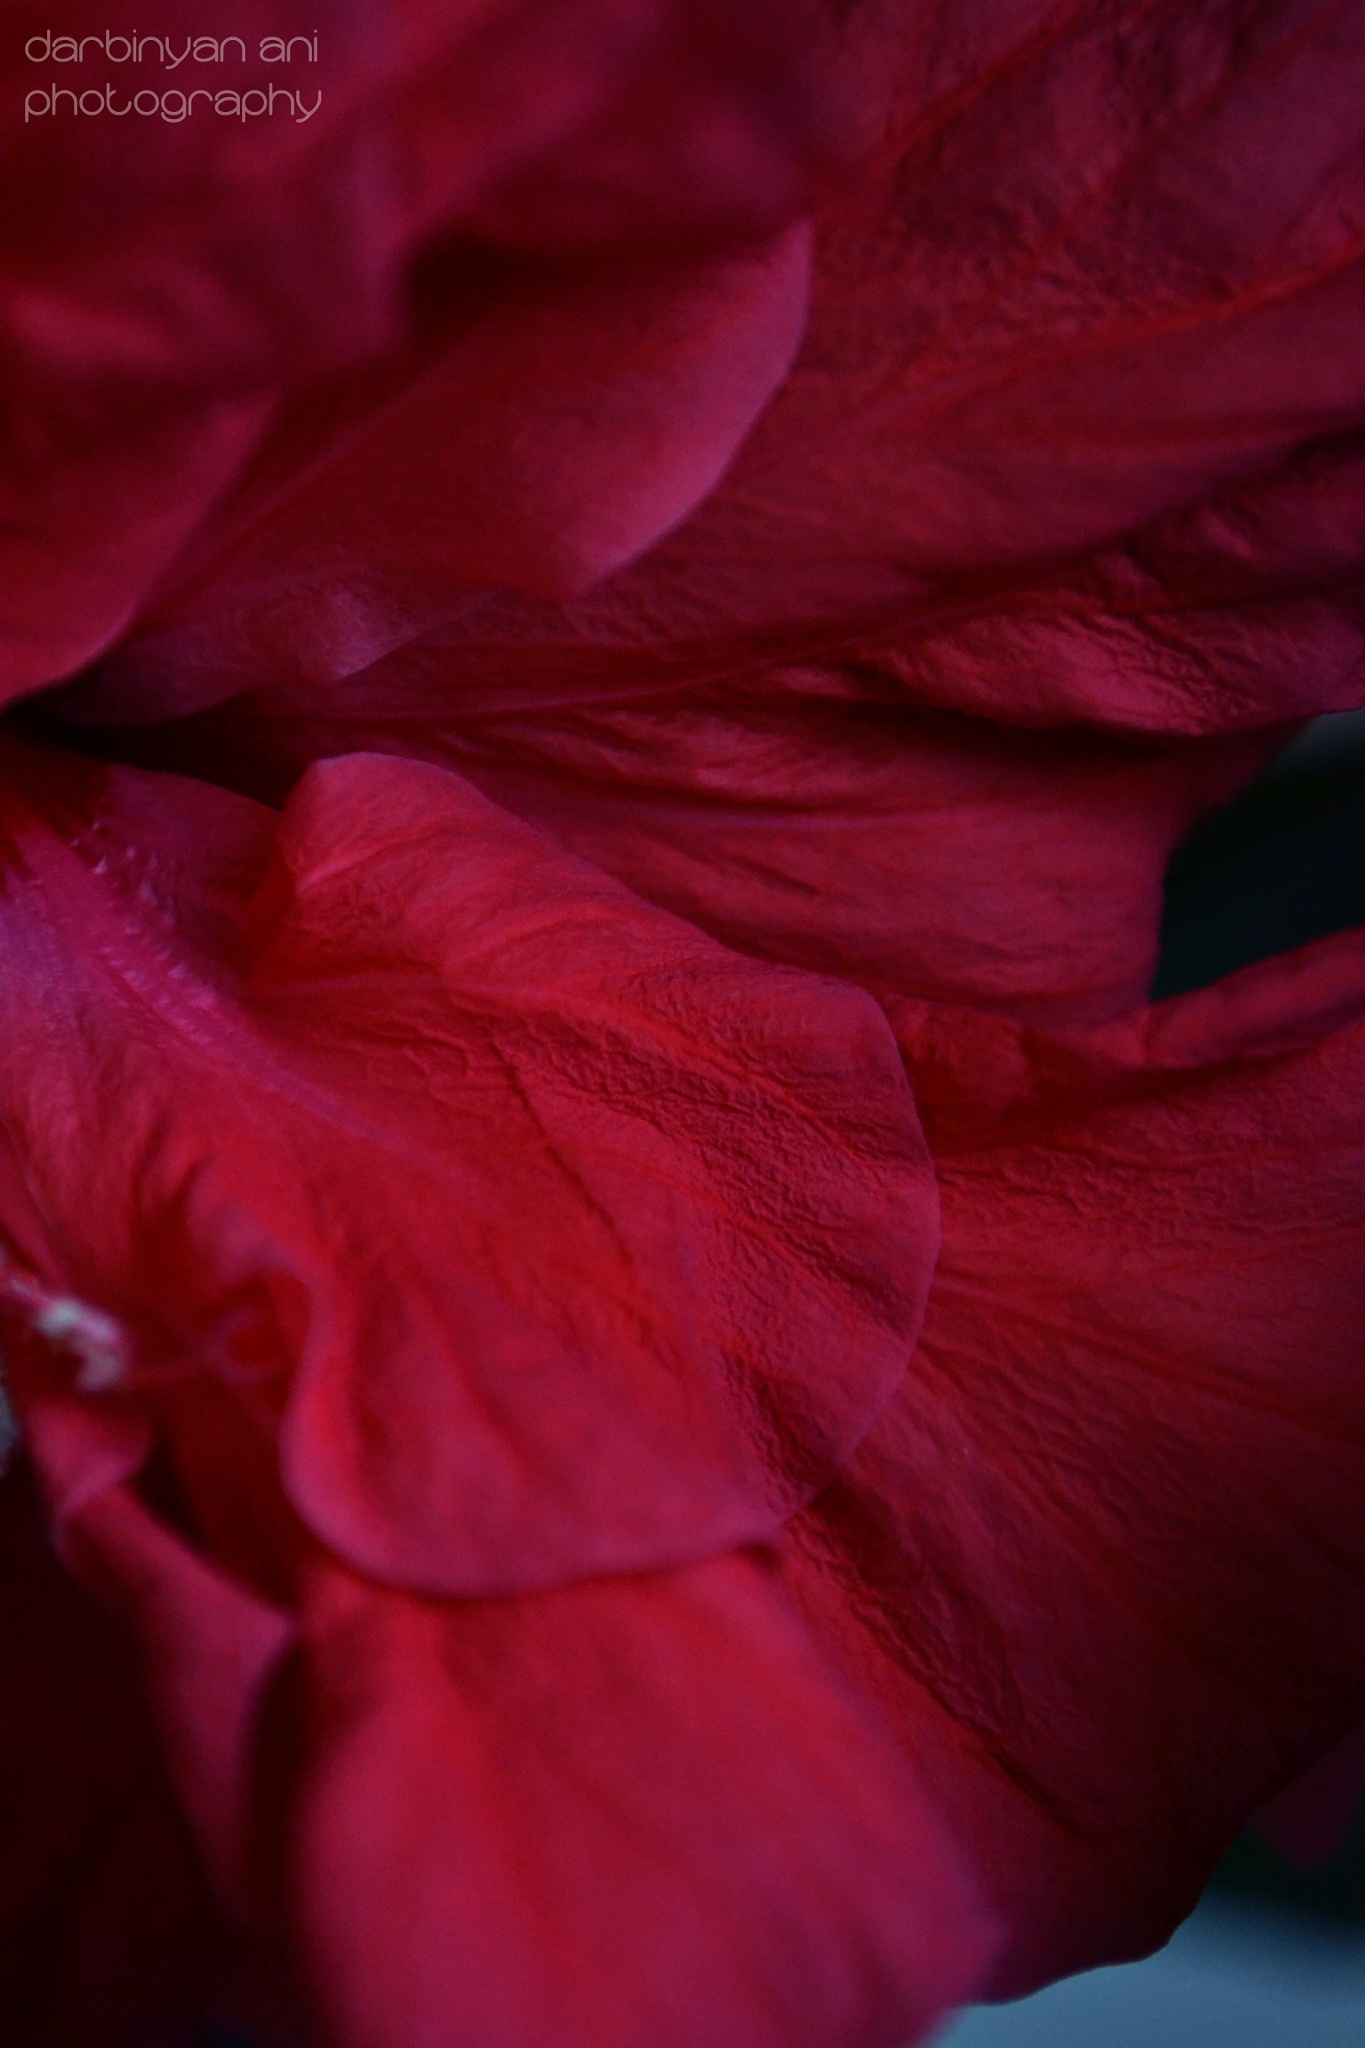 Red flower by ani darbinyan